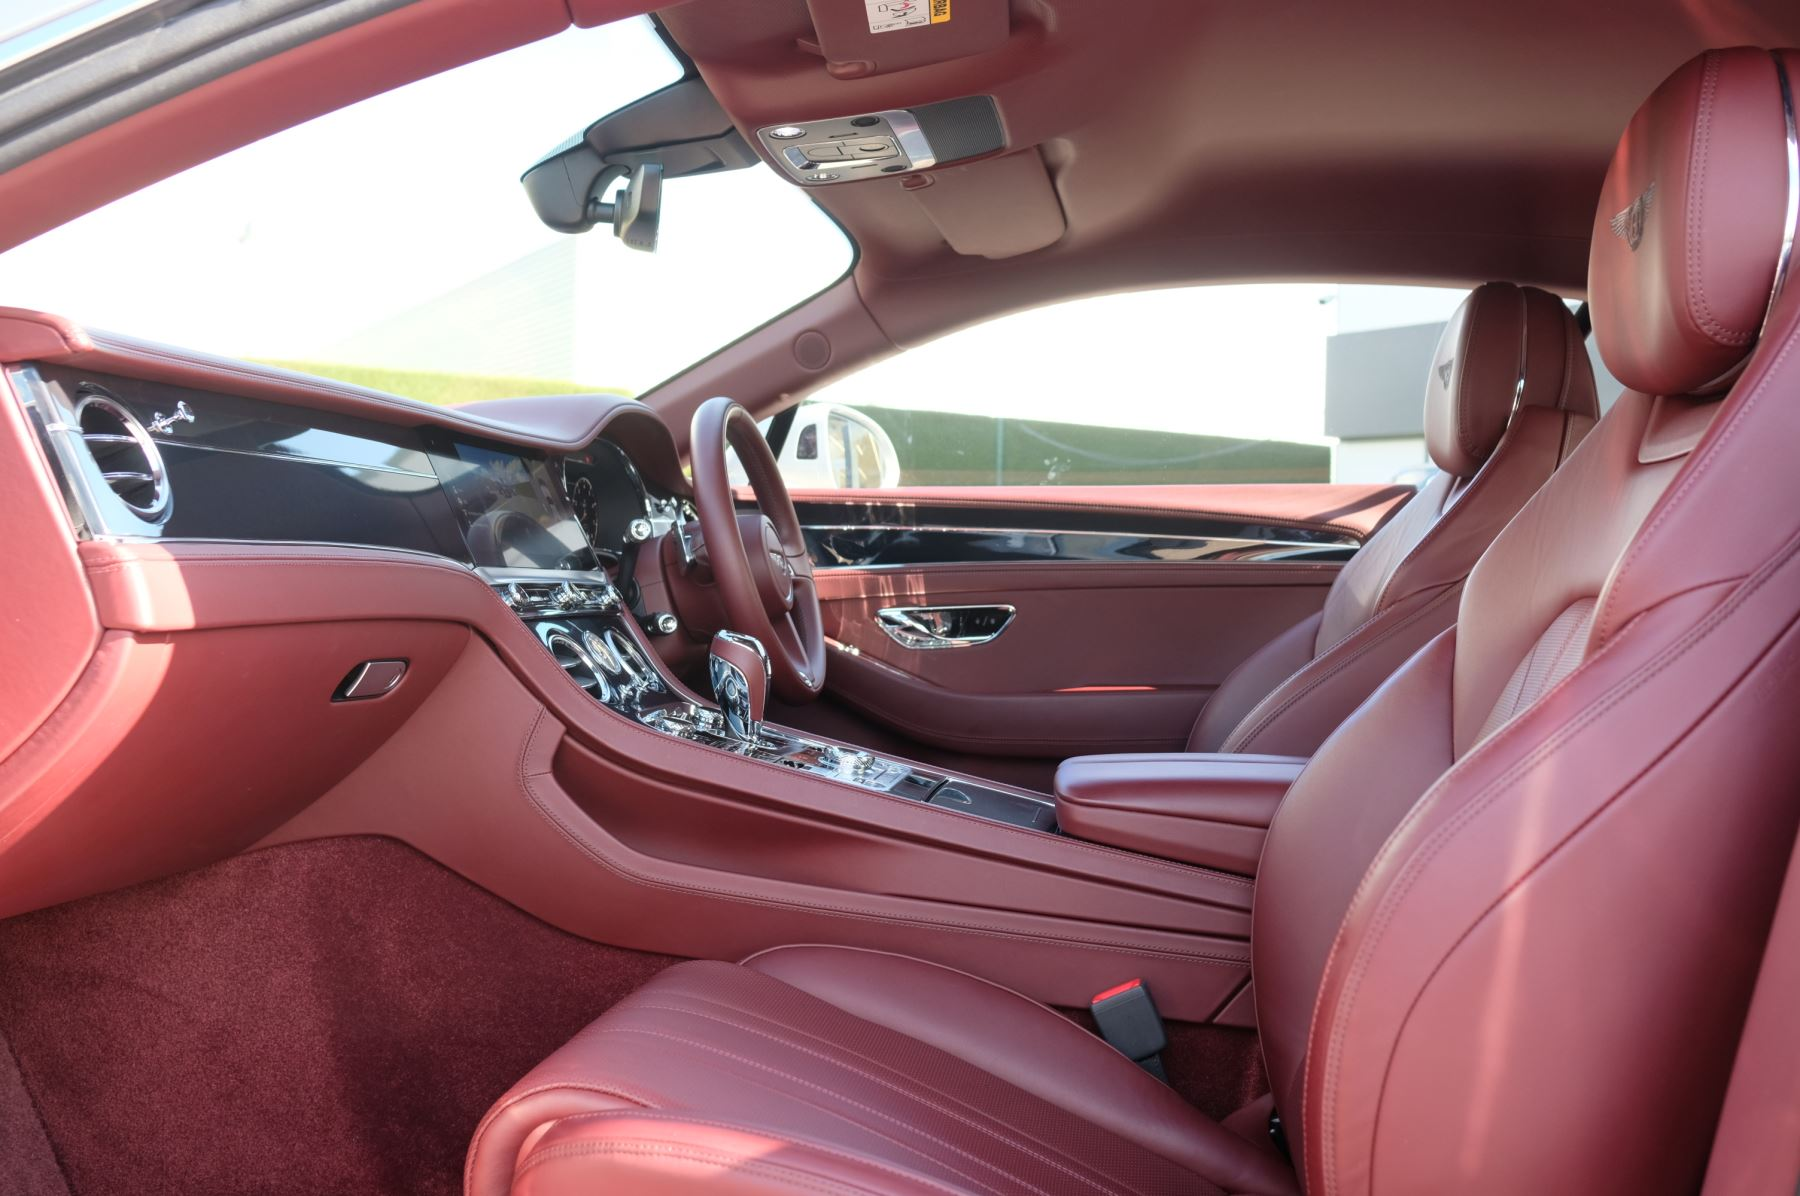 Bentley Continental GT 6.0 W12 Centenary, City and Touring Specification image 16